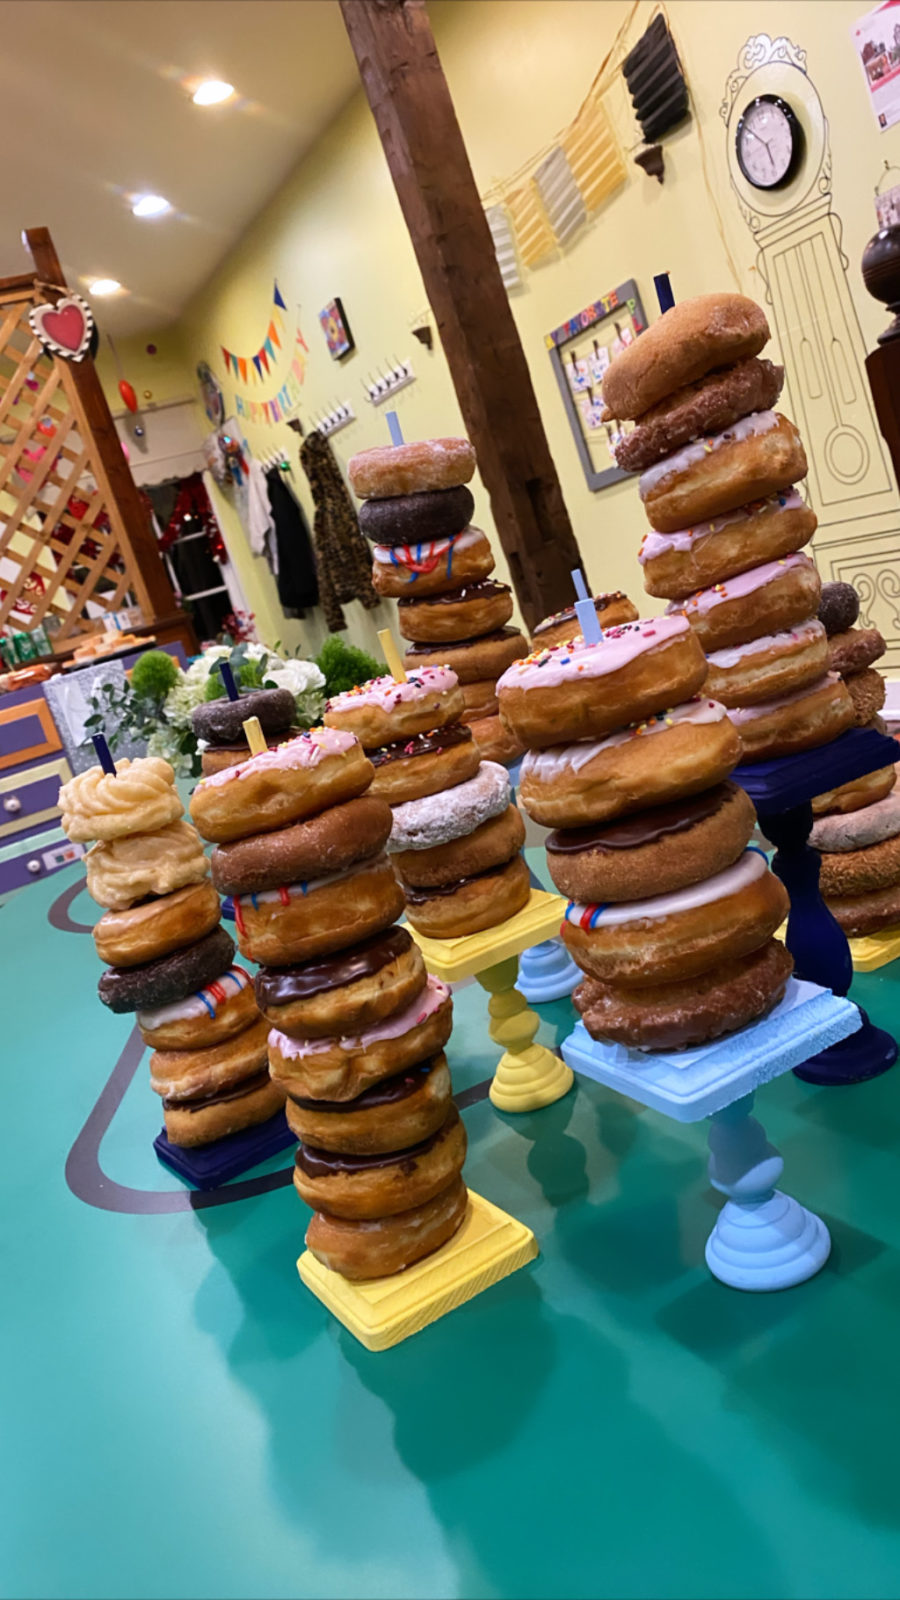 Dessert table ideas: Donut stands